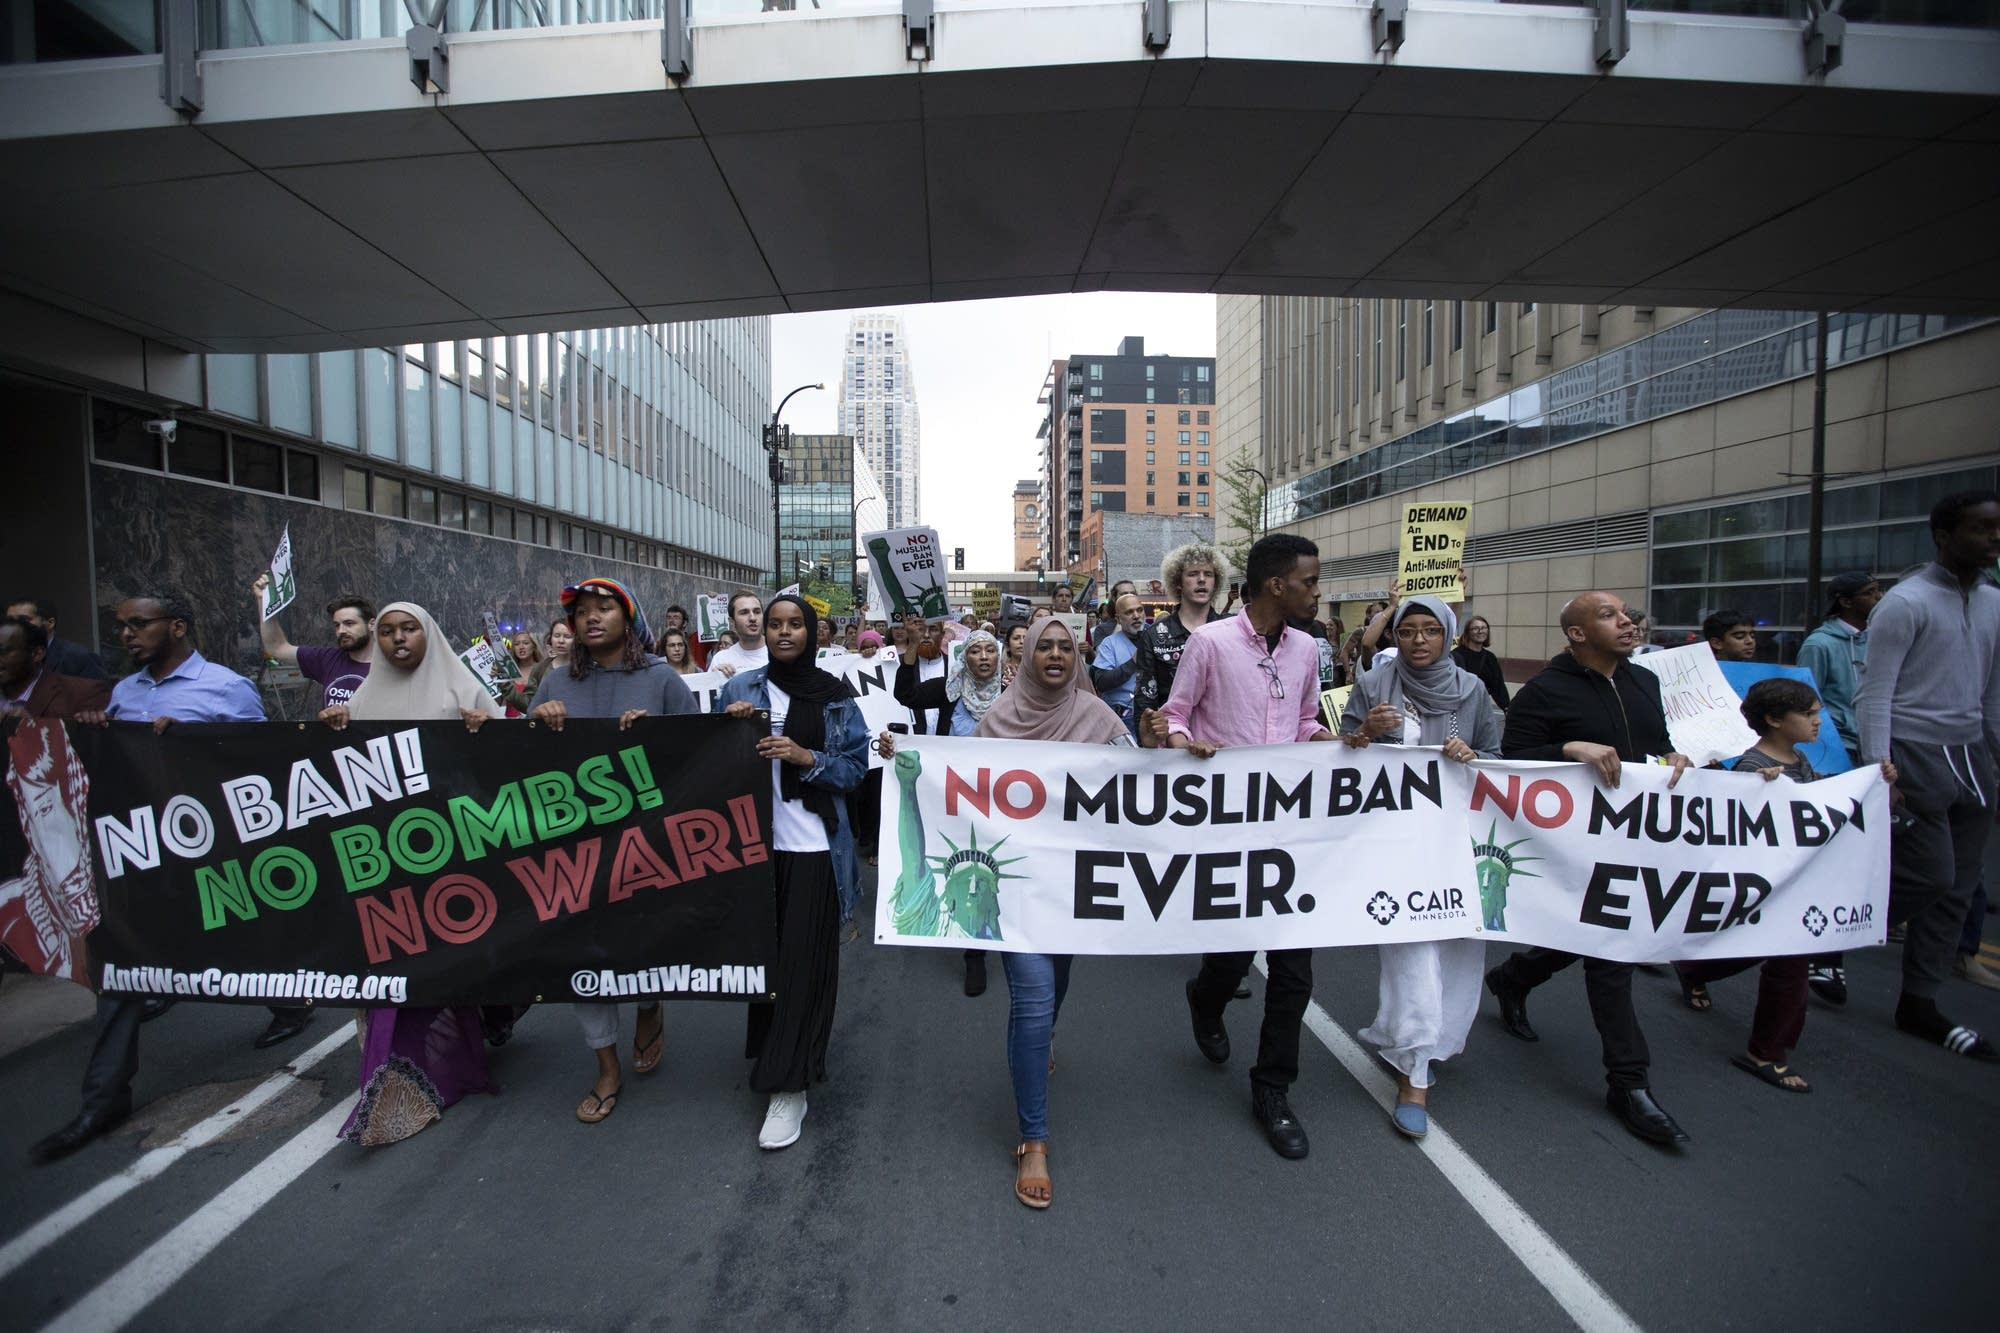 Travel ban protesters march down the street in Minneapolis.